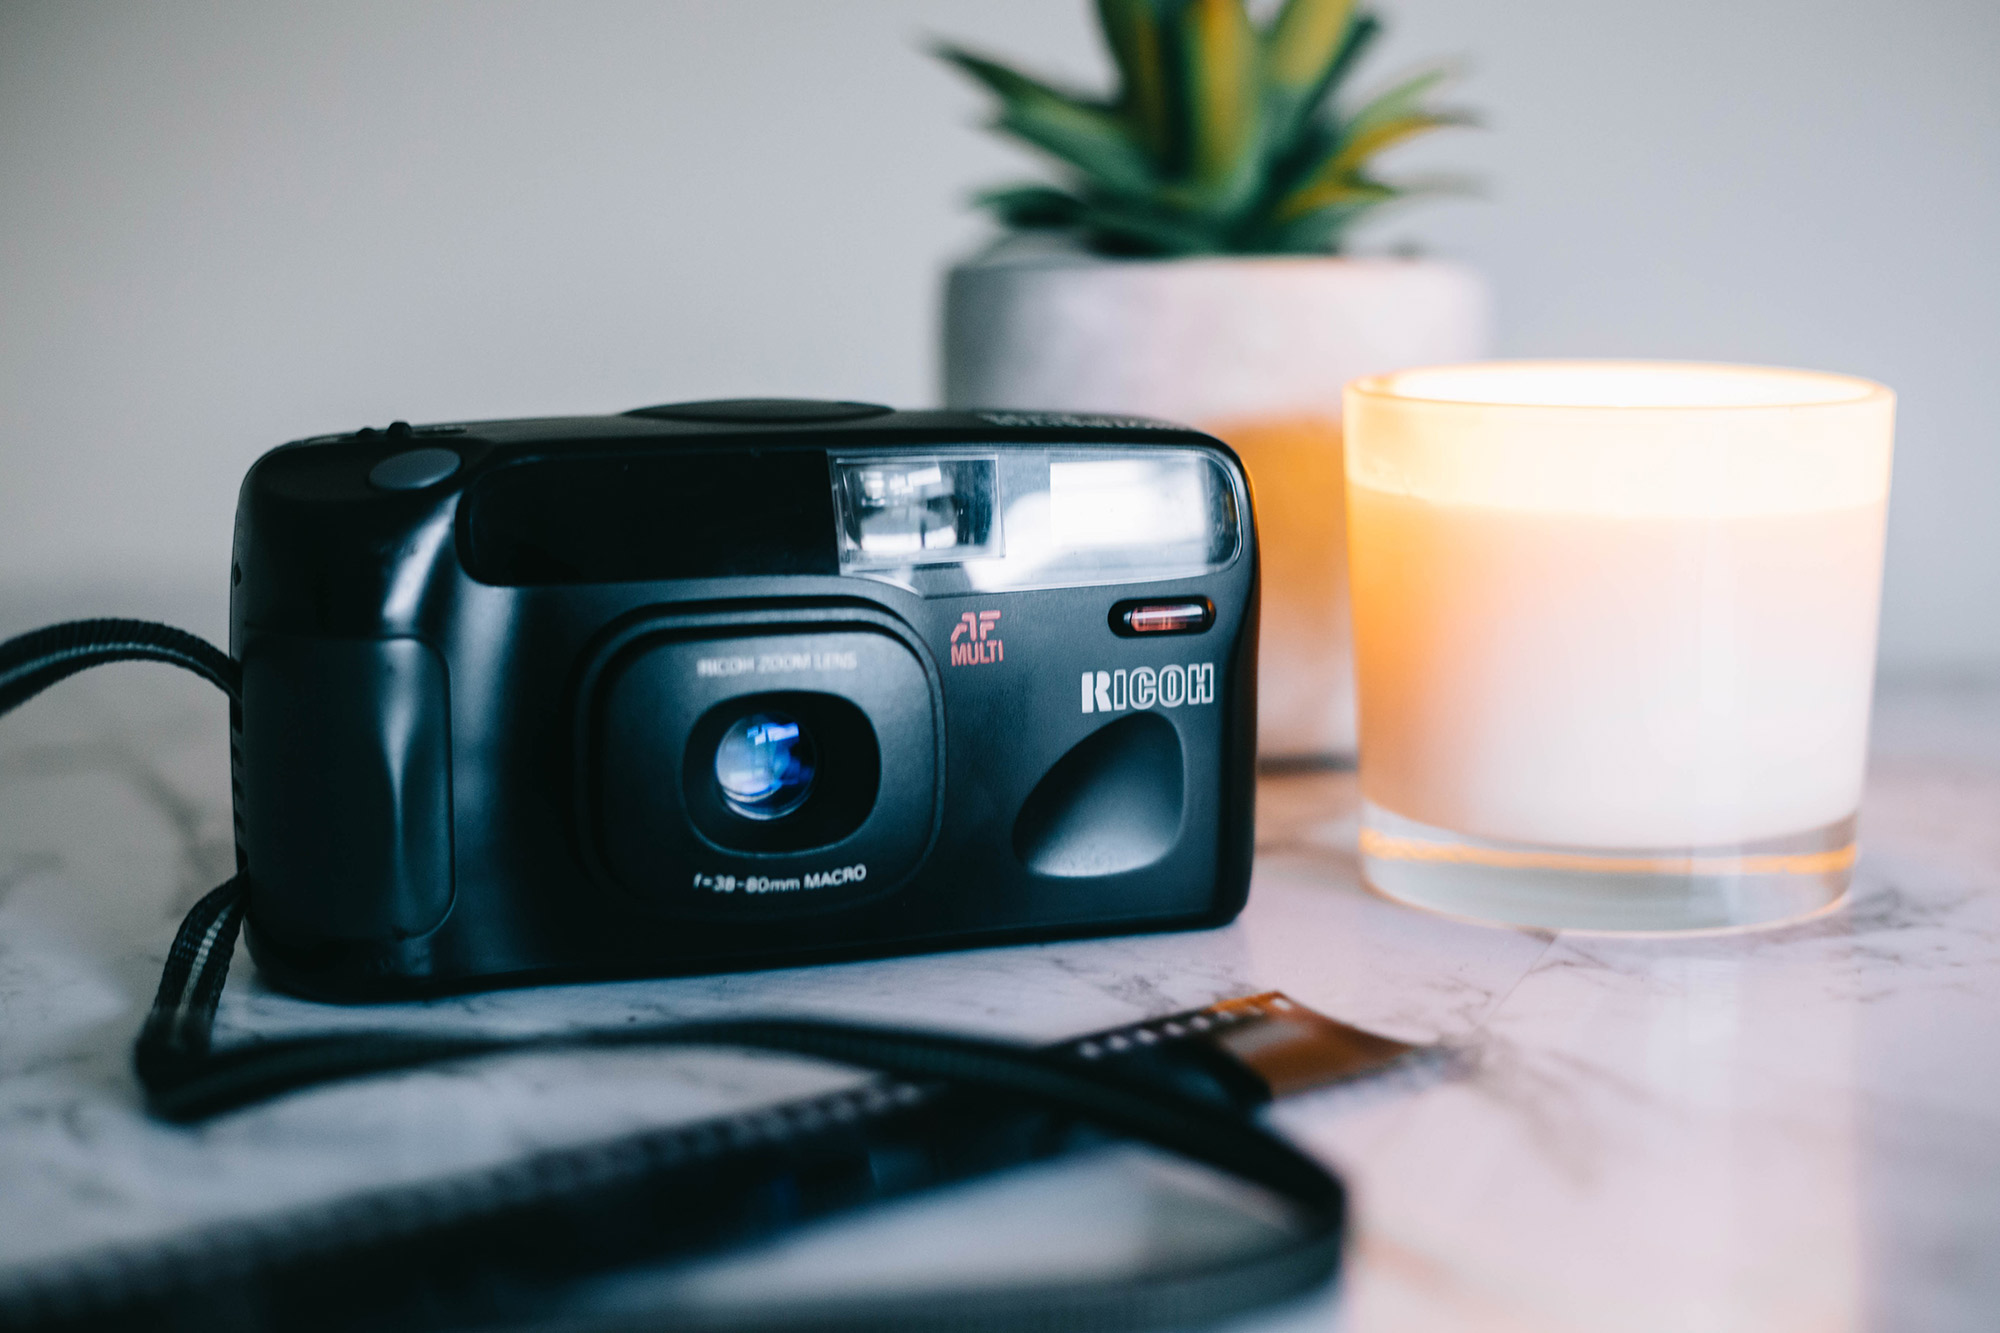 Ricoh Shotmaster Zoom Super Date Review – By Gavin Bain